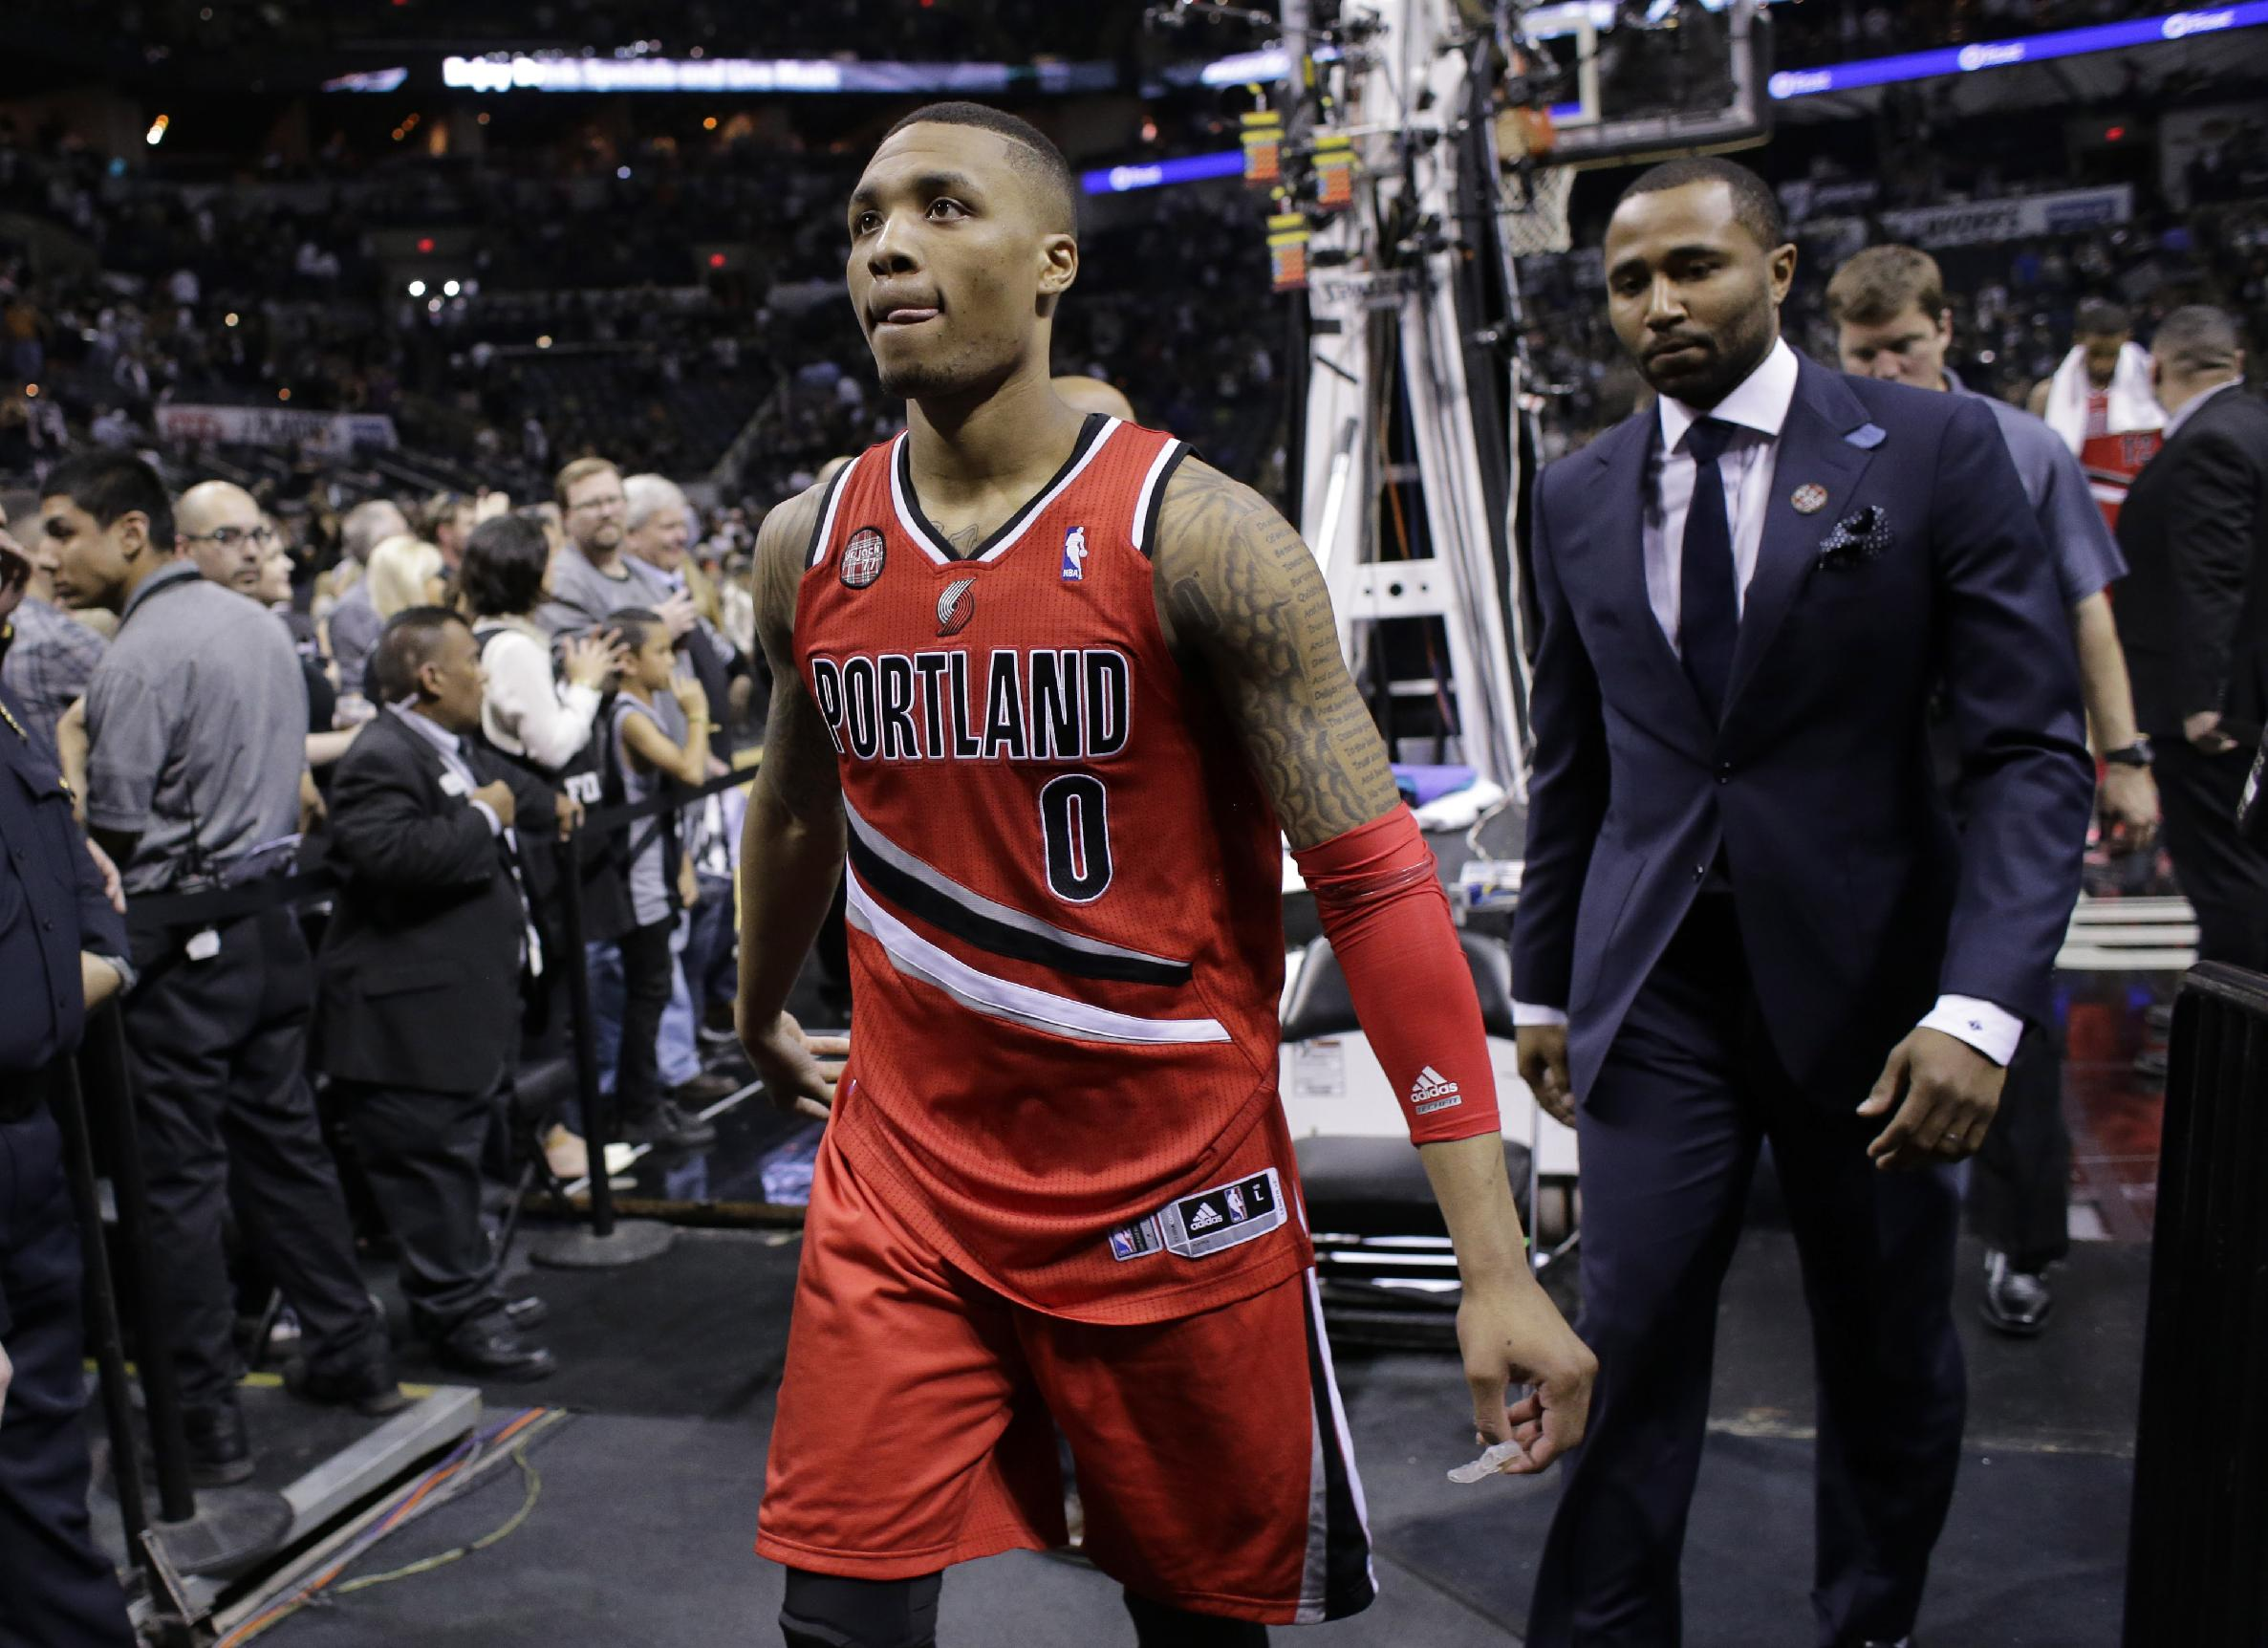 Portland Trail Blazers' Damian Lillard (0) walks off the court following the team's loss in Game 5 of a Western Conference semifinal NBA basketball playoff series, Wednesday, May 14, 2014, in San Antonio. San Antonio won 104-82